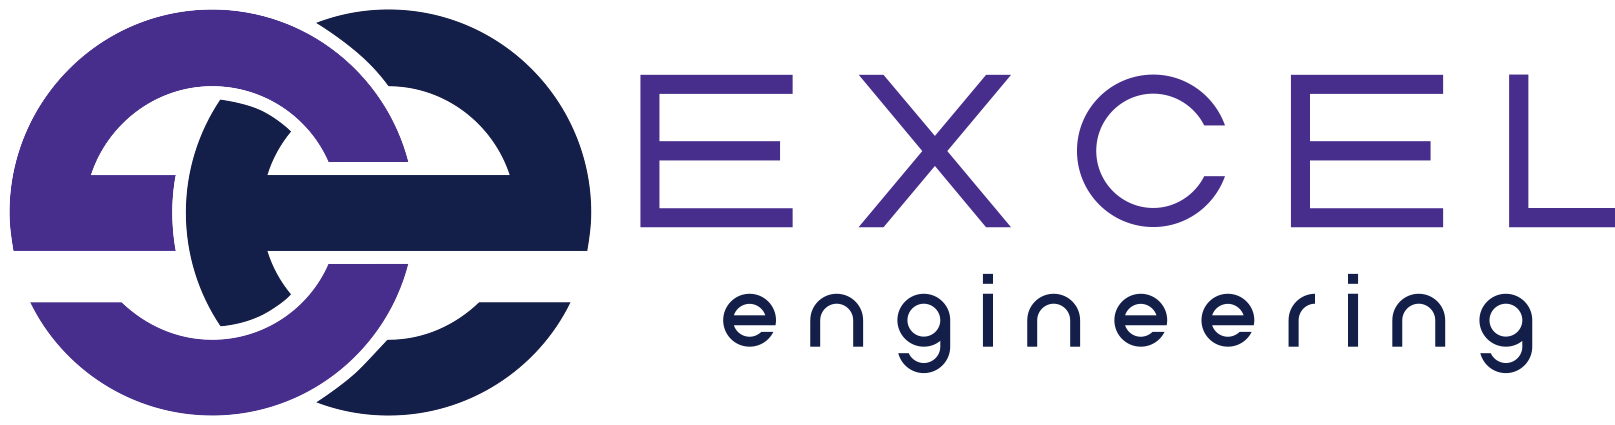 Excel-Engineering-Final-Selected-Logo-Landscape